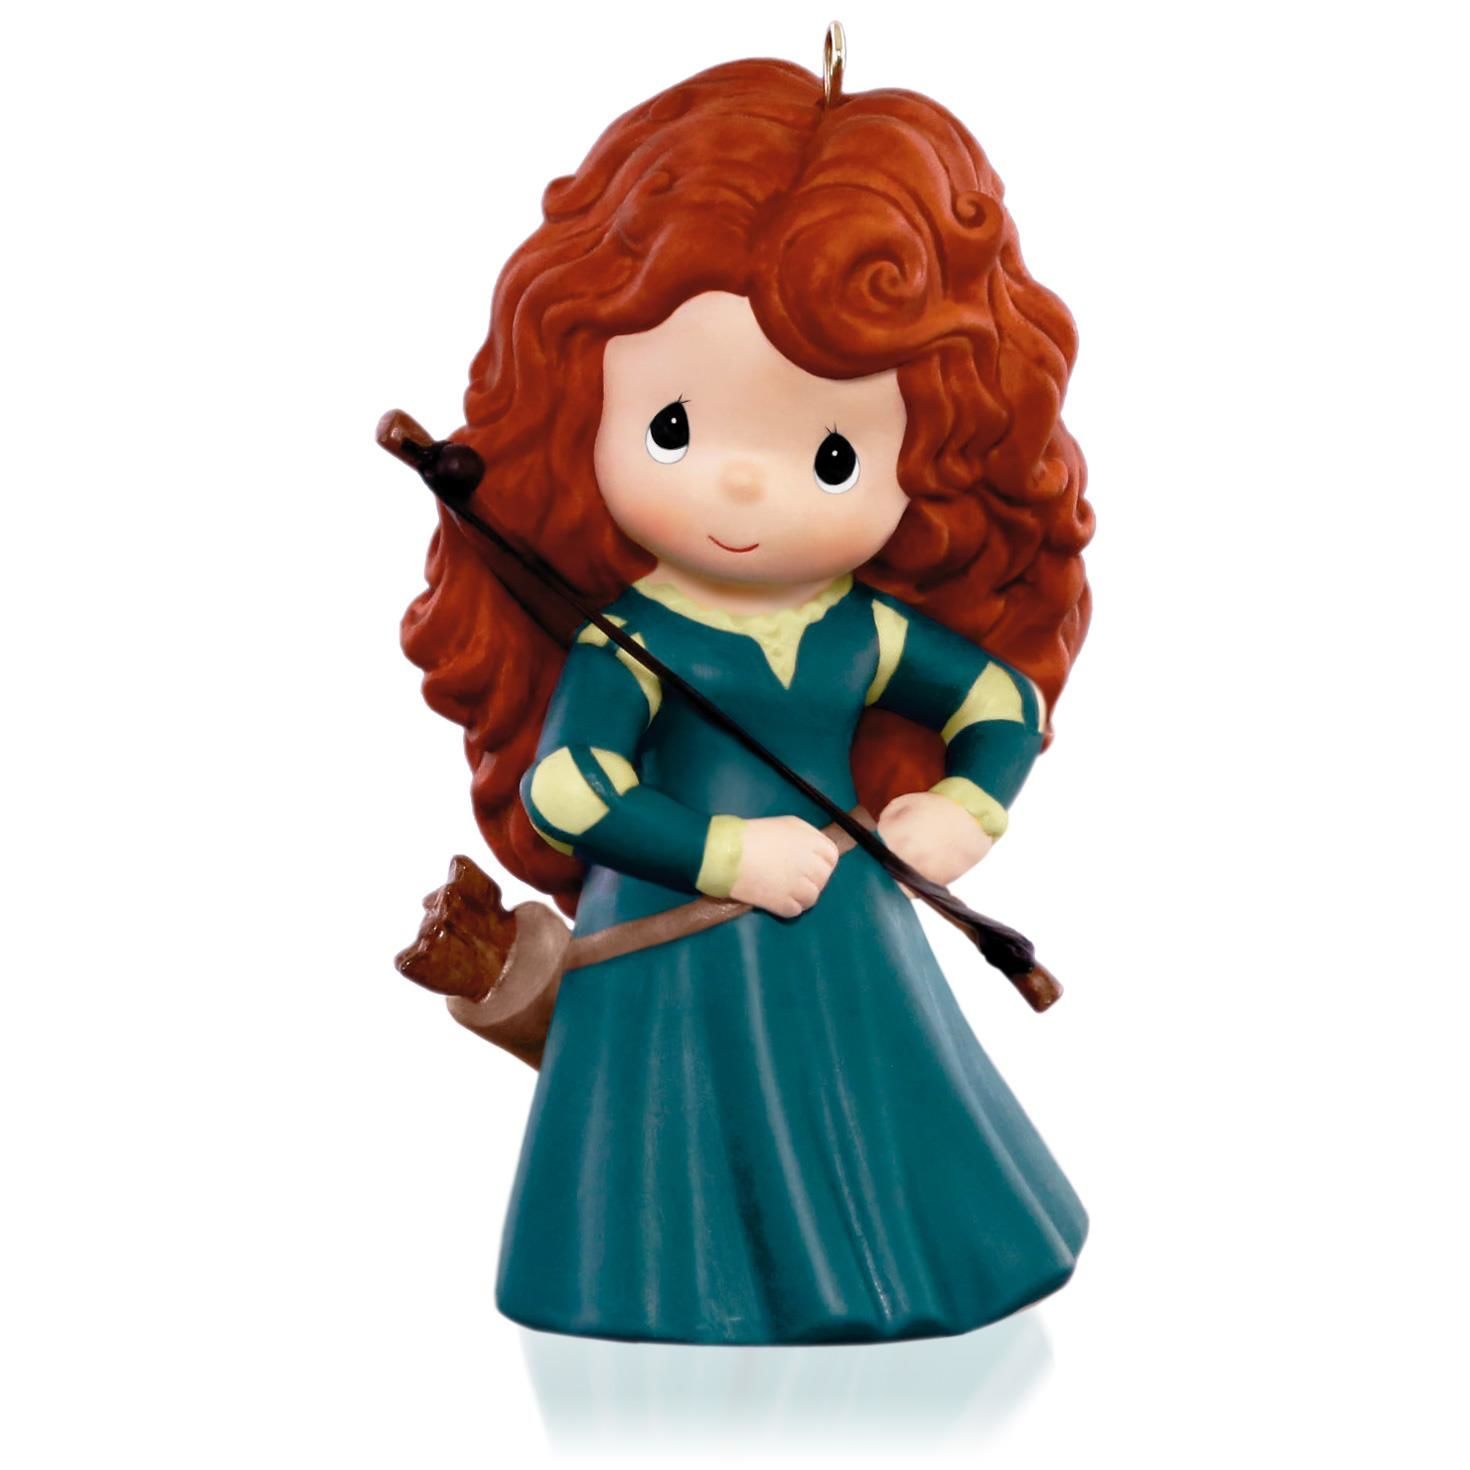 2015 Princess Merida Disney Hallmark Keepsake Ornament